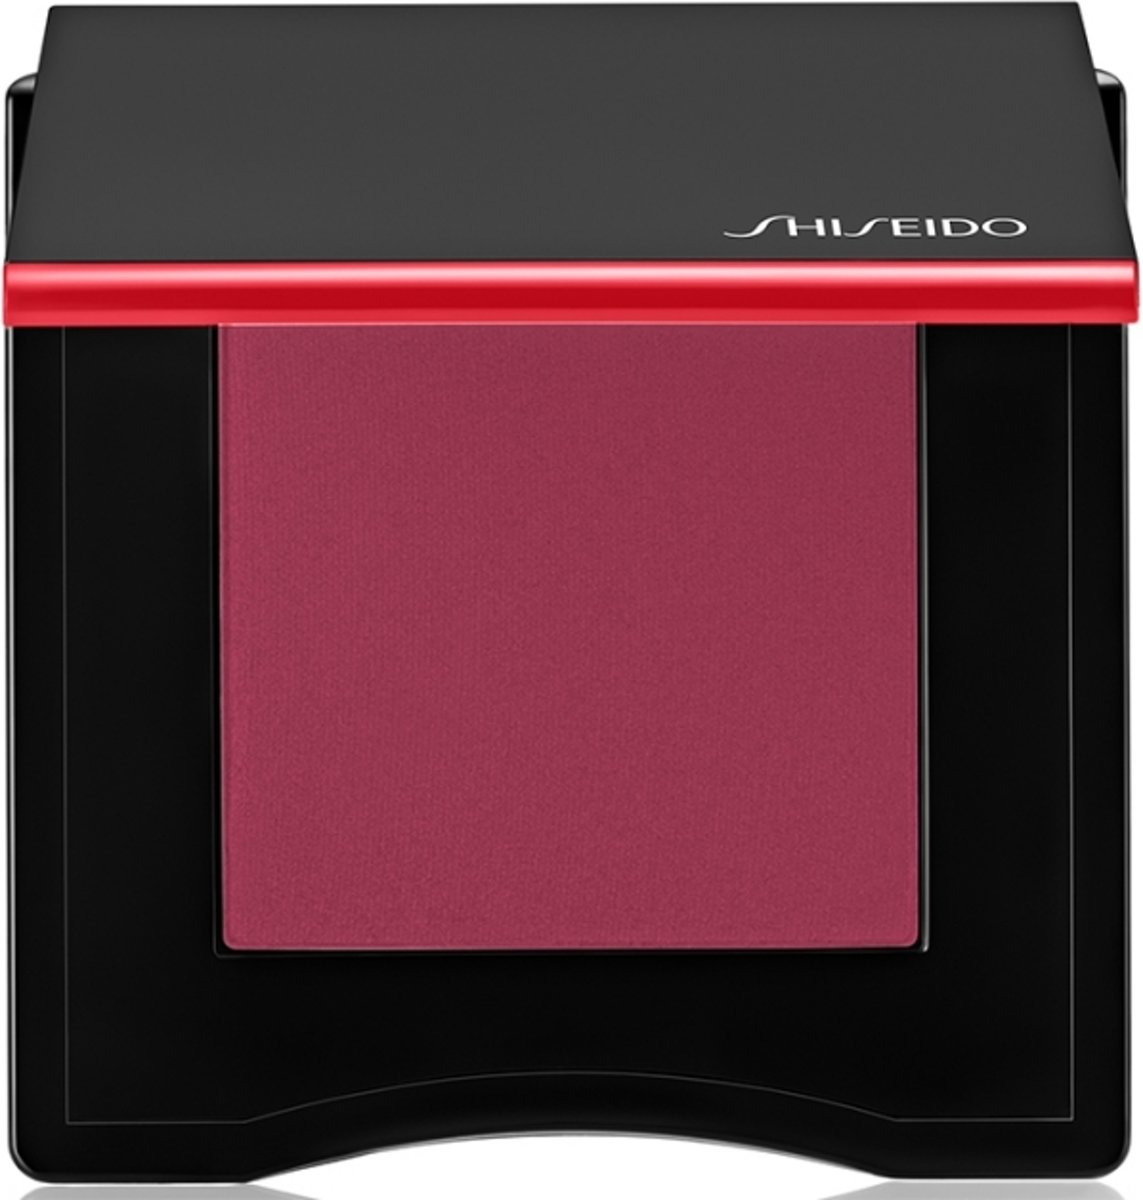 Shiseido InnerGlow CheekPowder Blush 4 gr - 08 - Berry Dawn